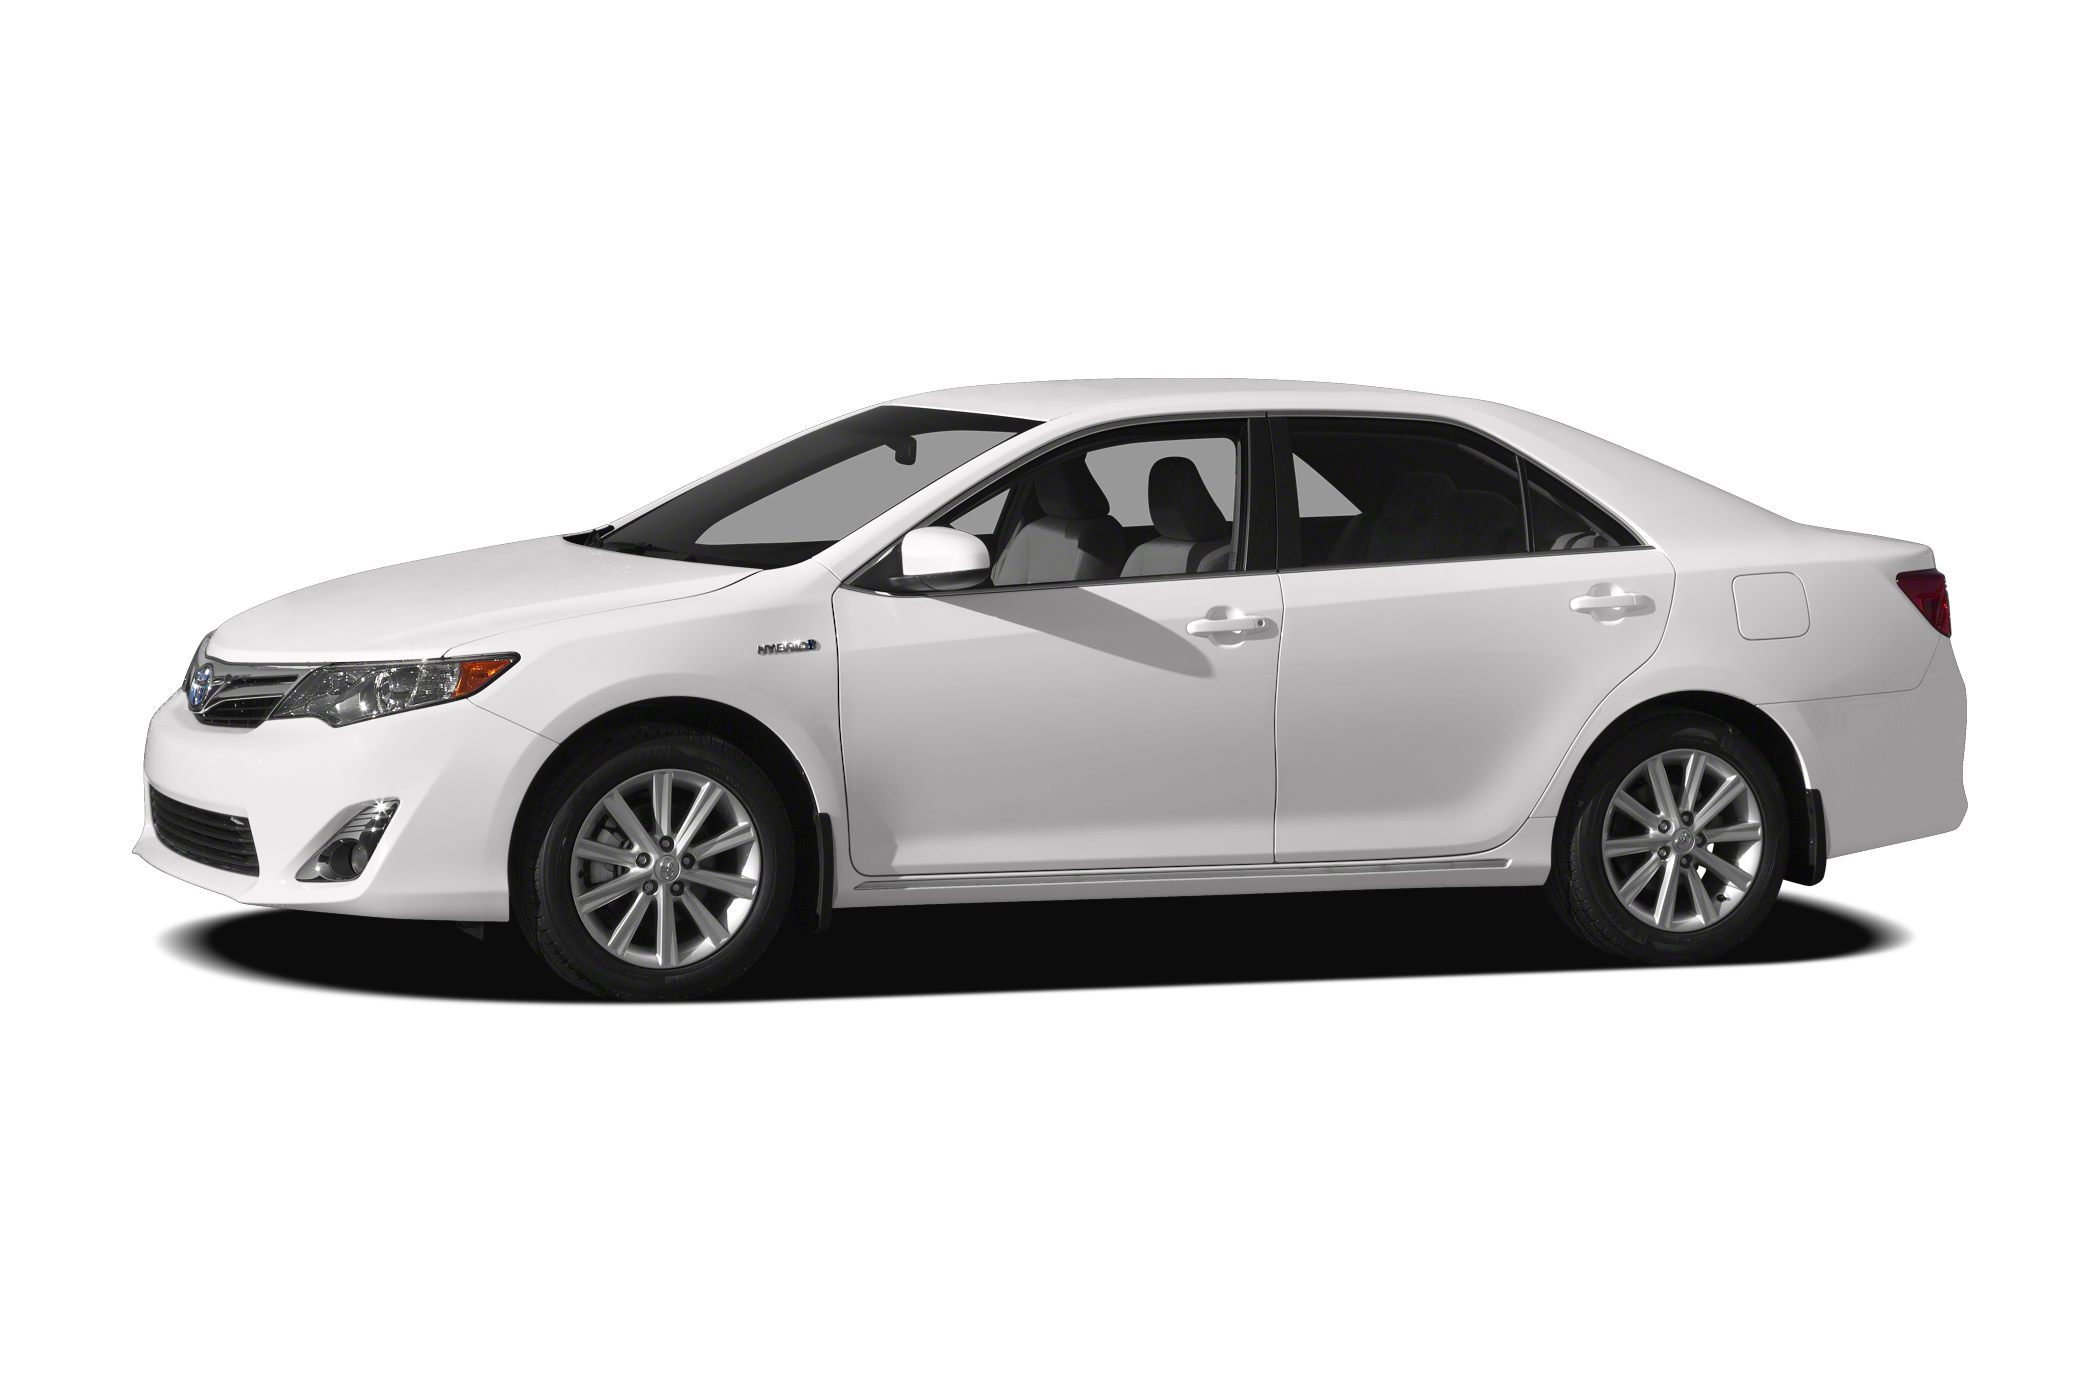 release toyota of camry price range inspirational cars model update